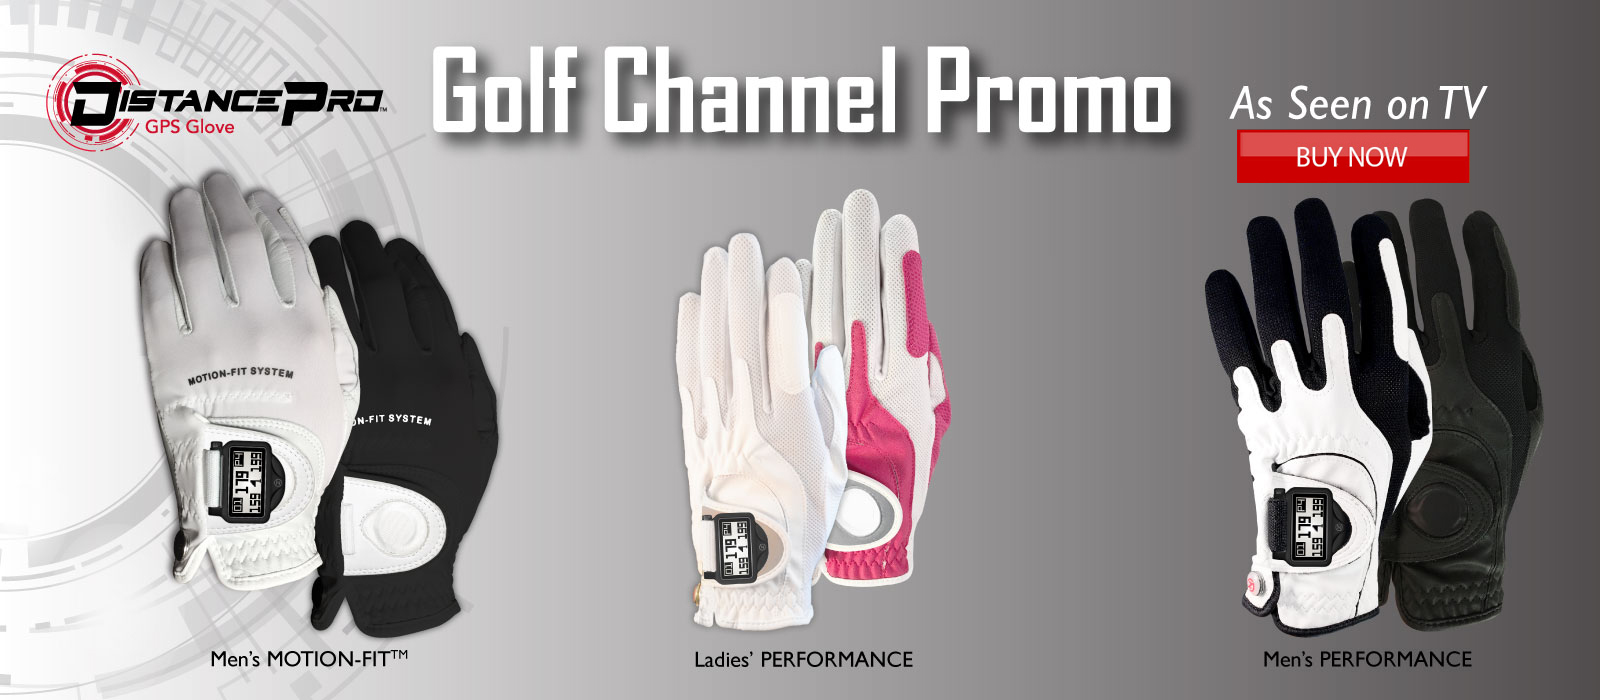 golf channel gps promotion